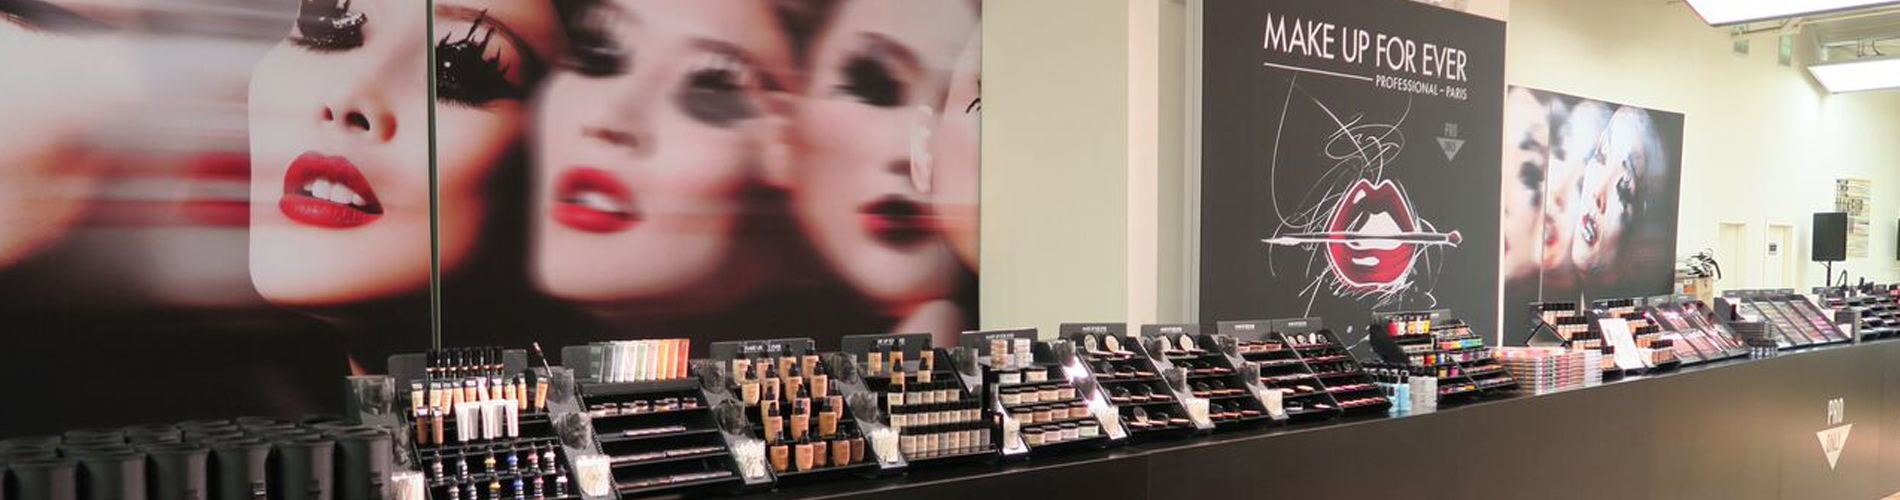 Make Up Forever Trade Show Booth